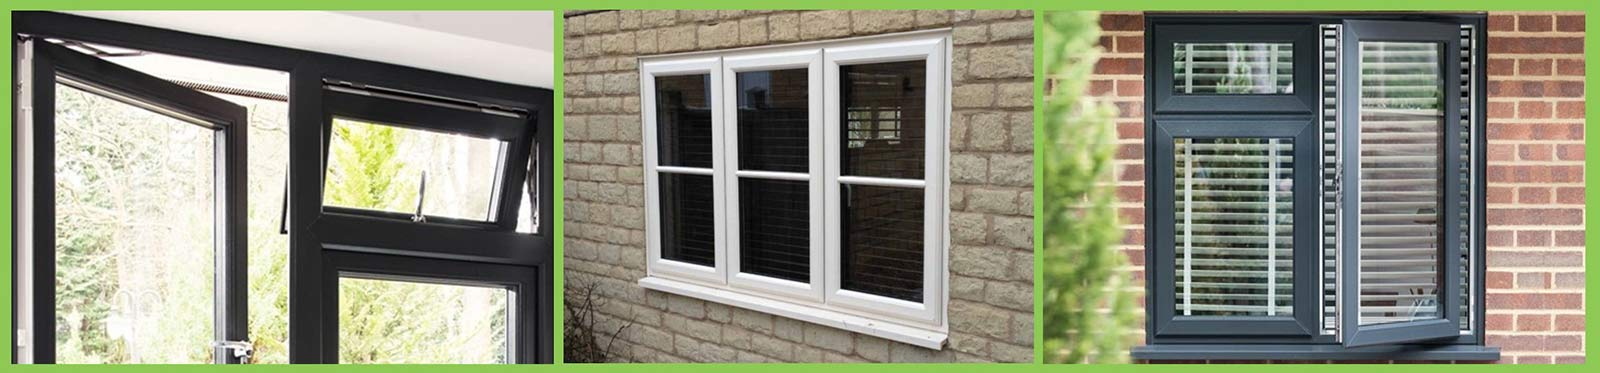 upvc casement windows somerset